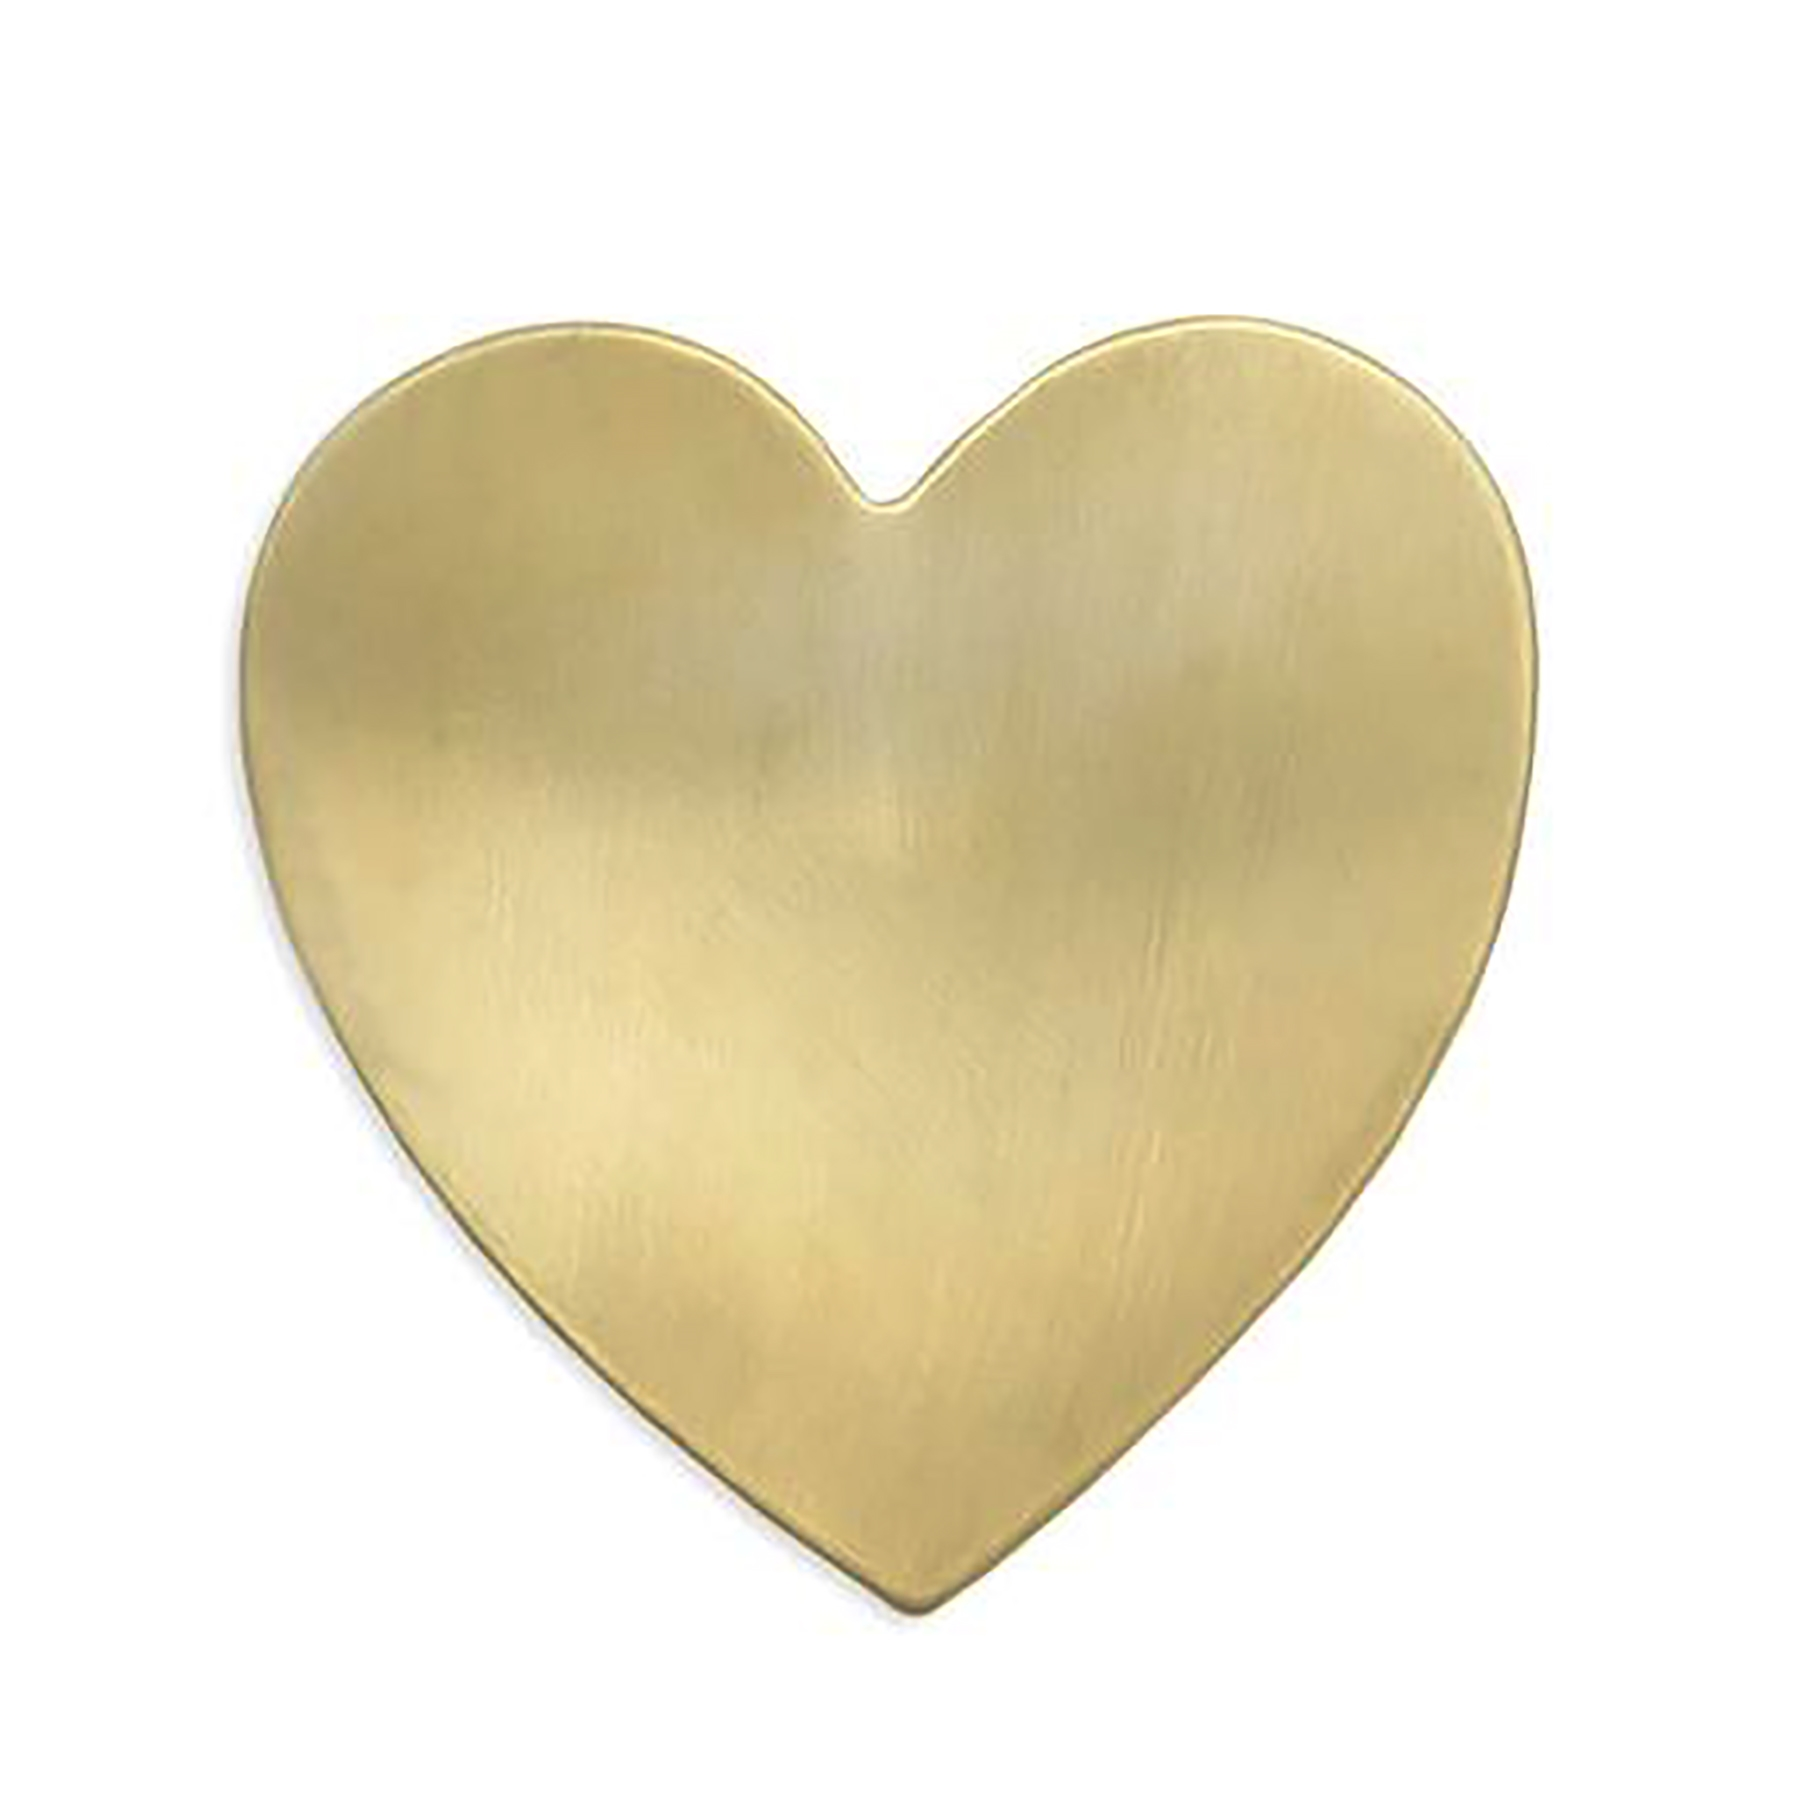 heart blank, brass hearts, jewelry supplies